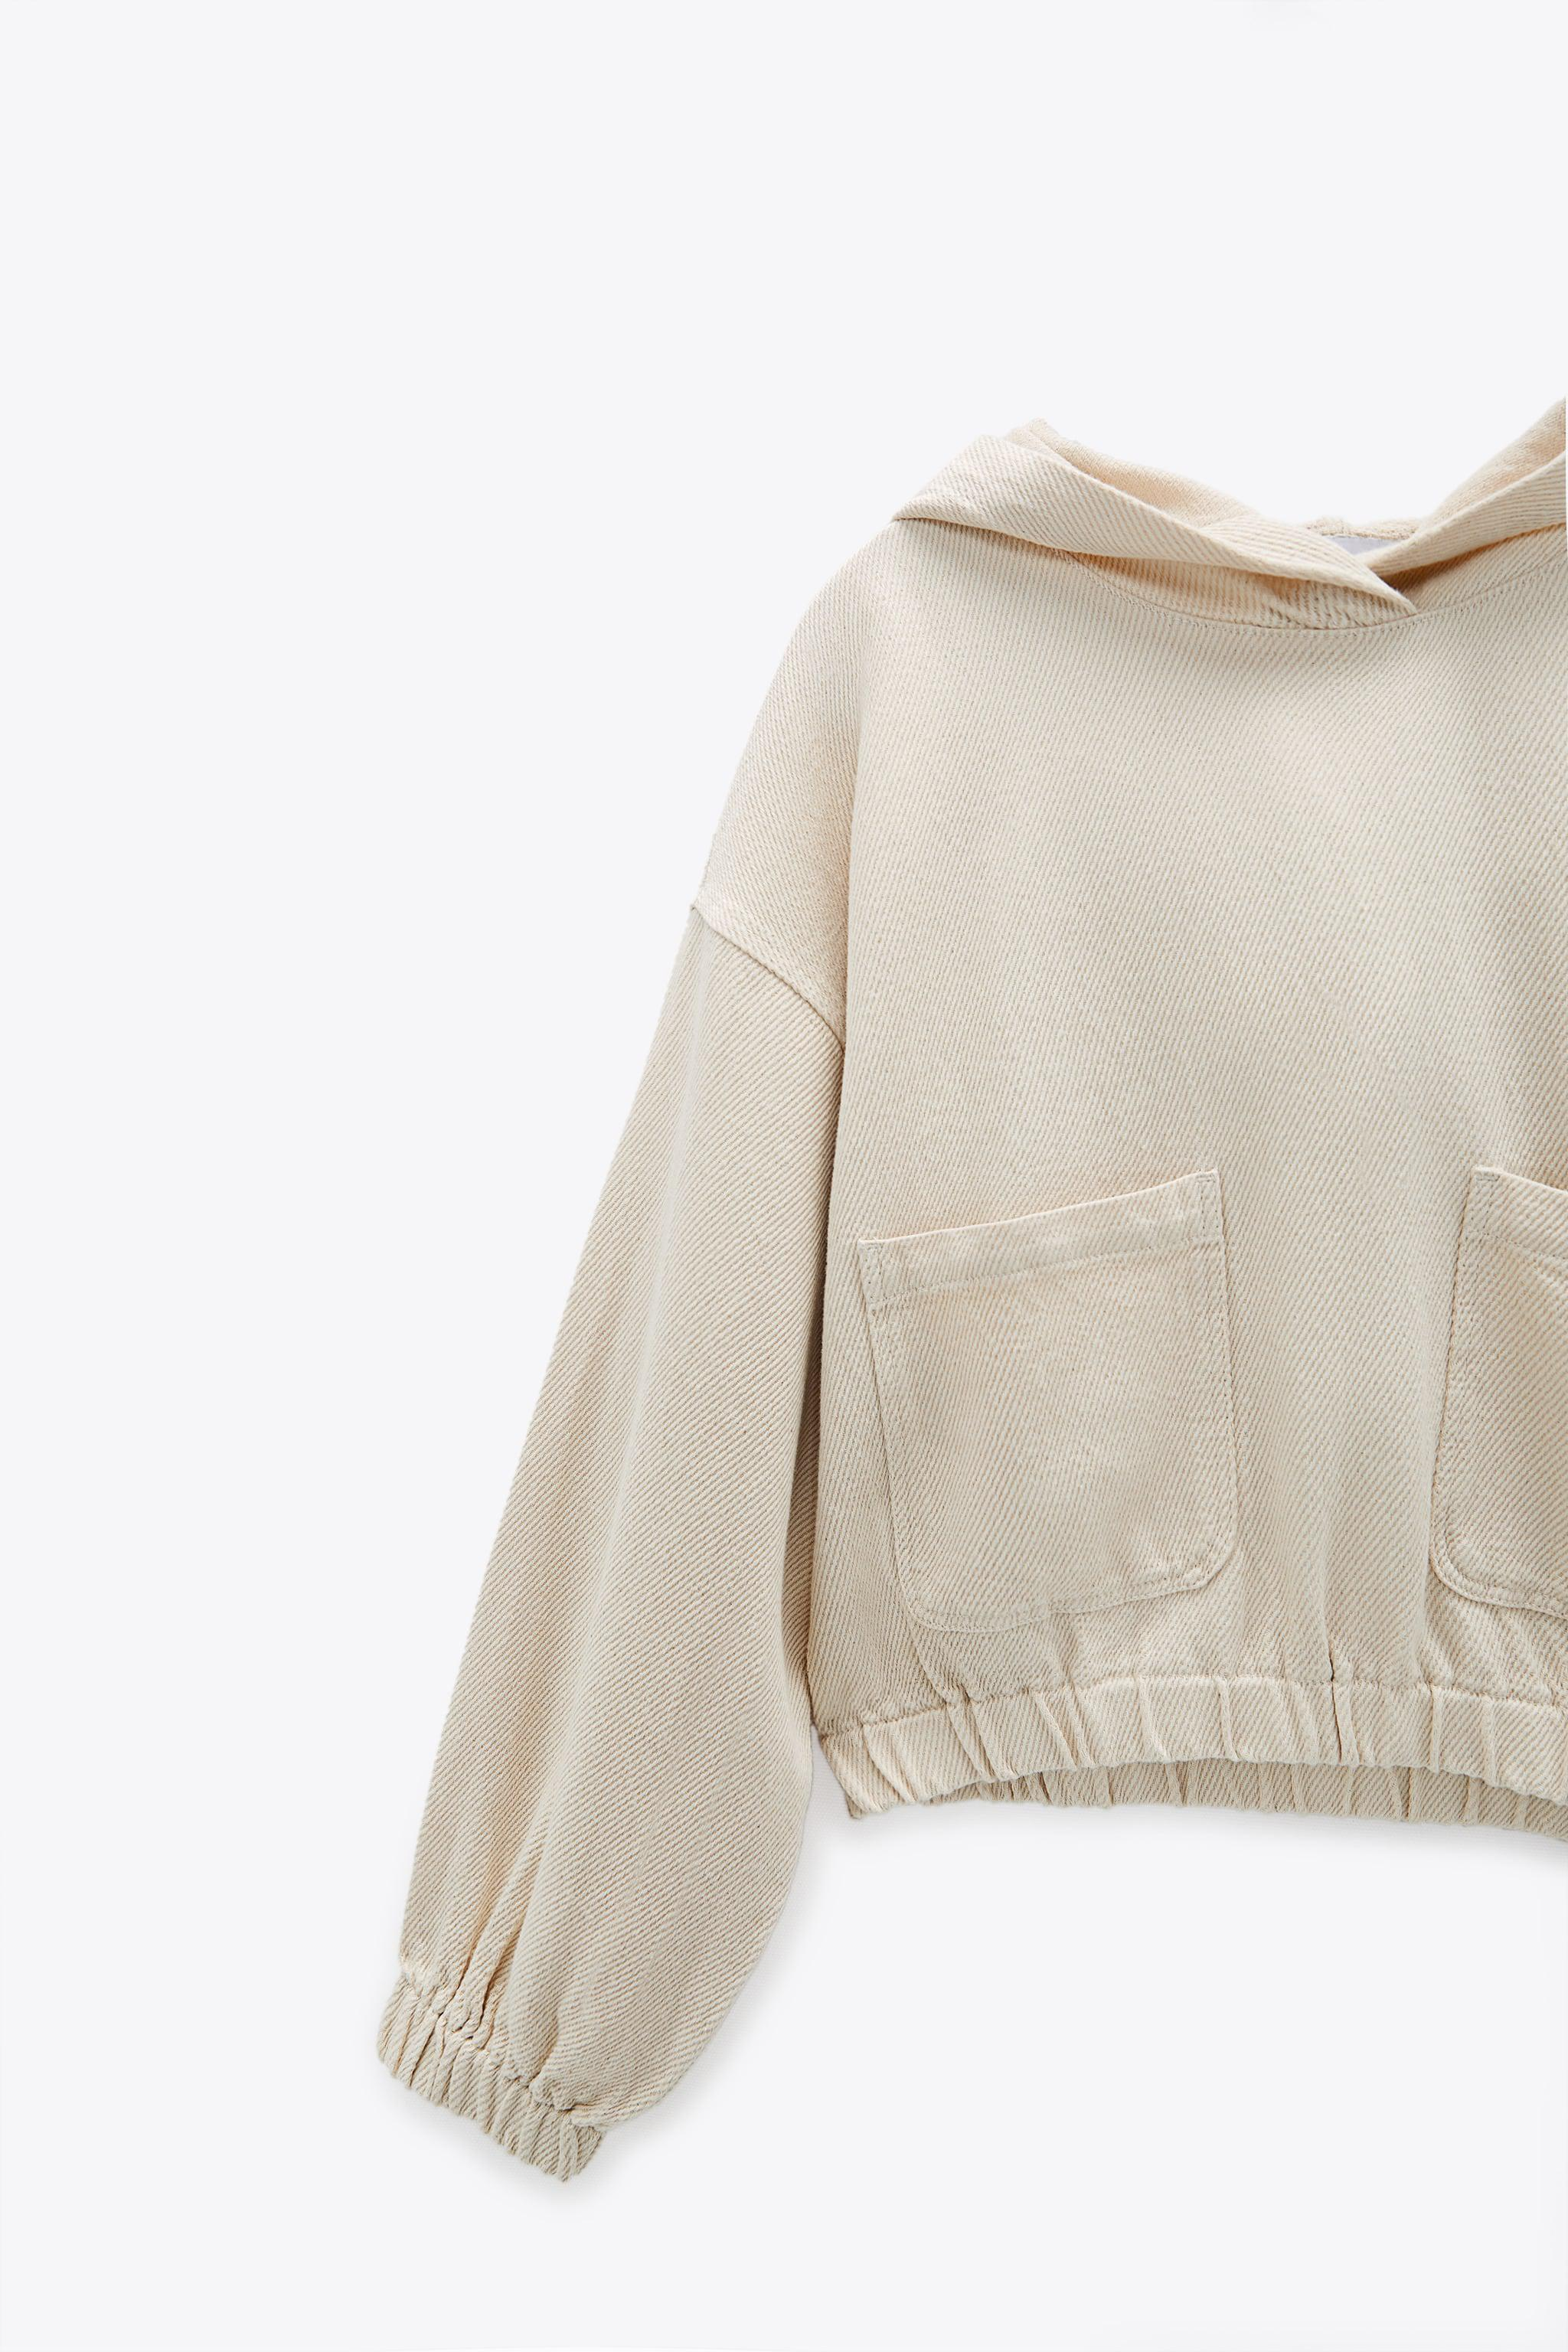 HOODED TWILL TOP 10